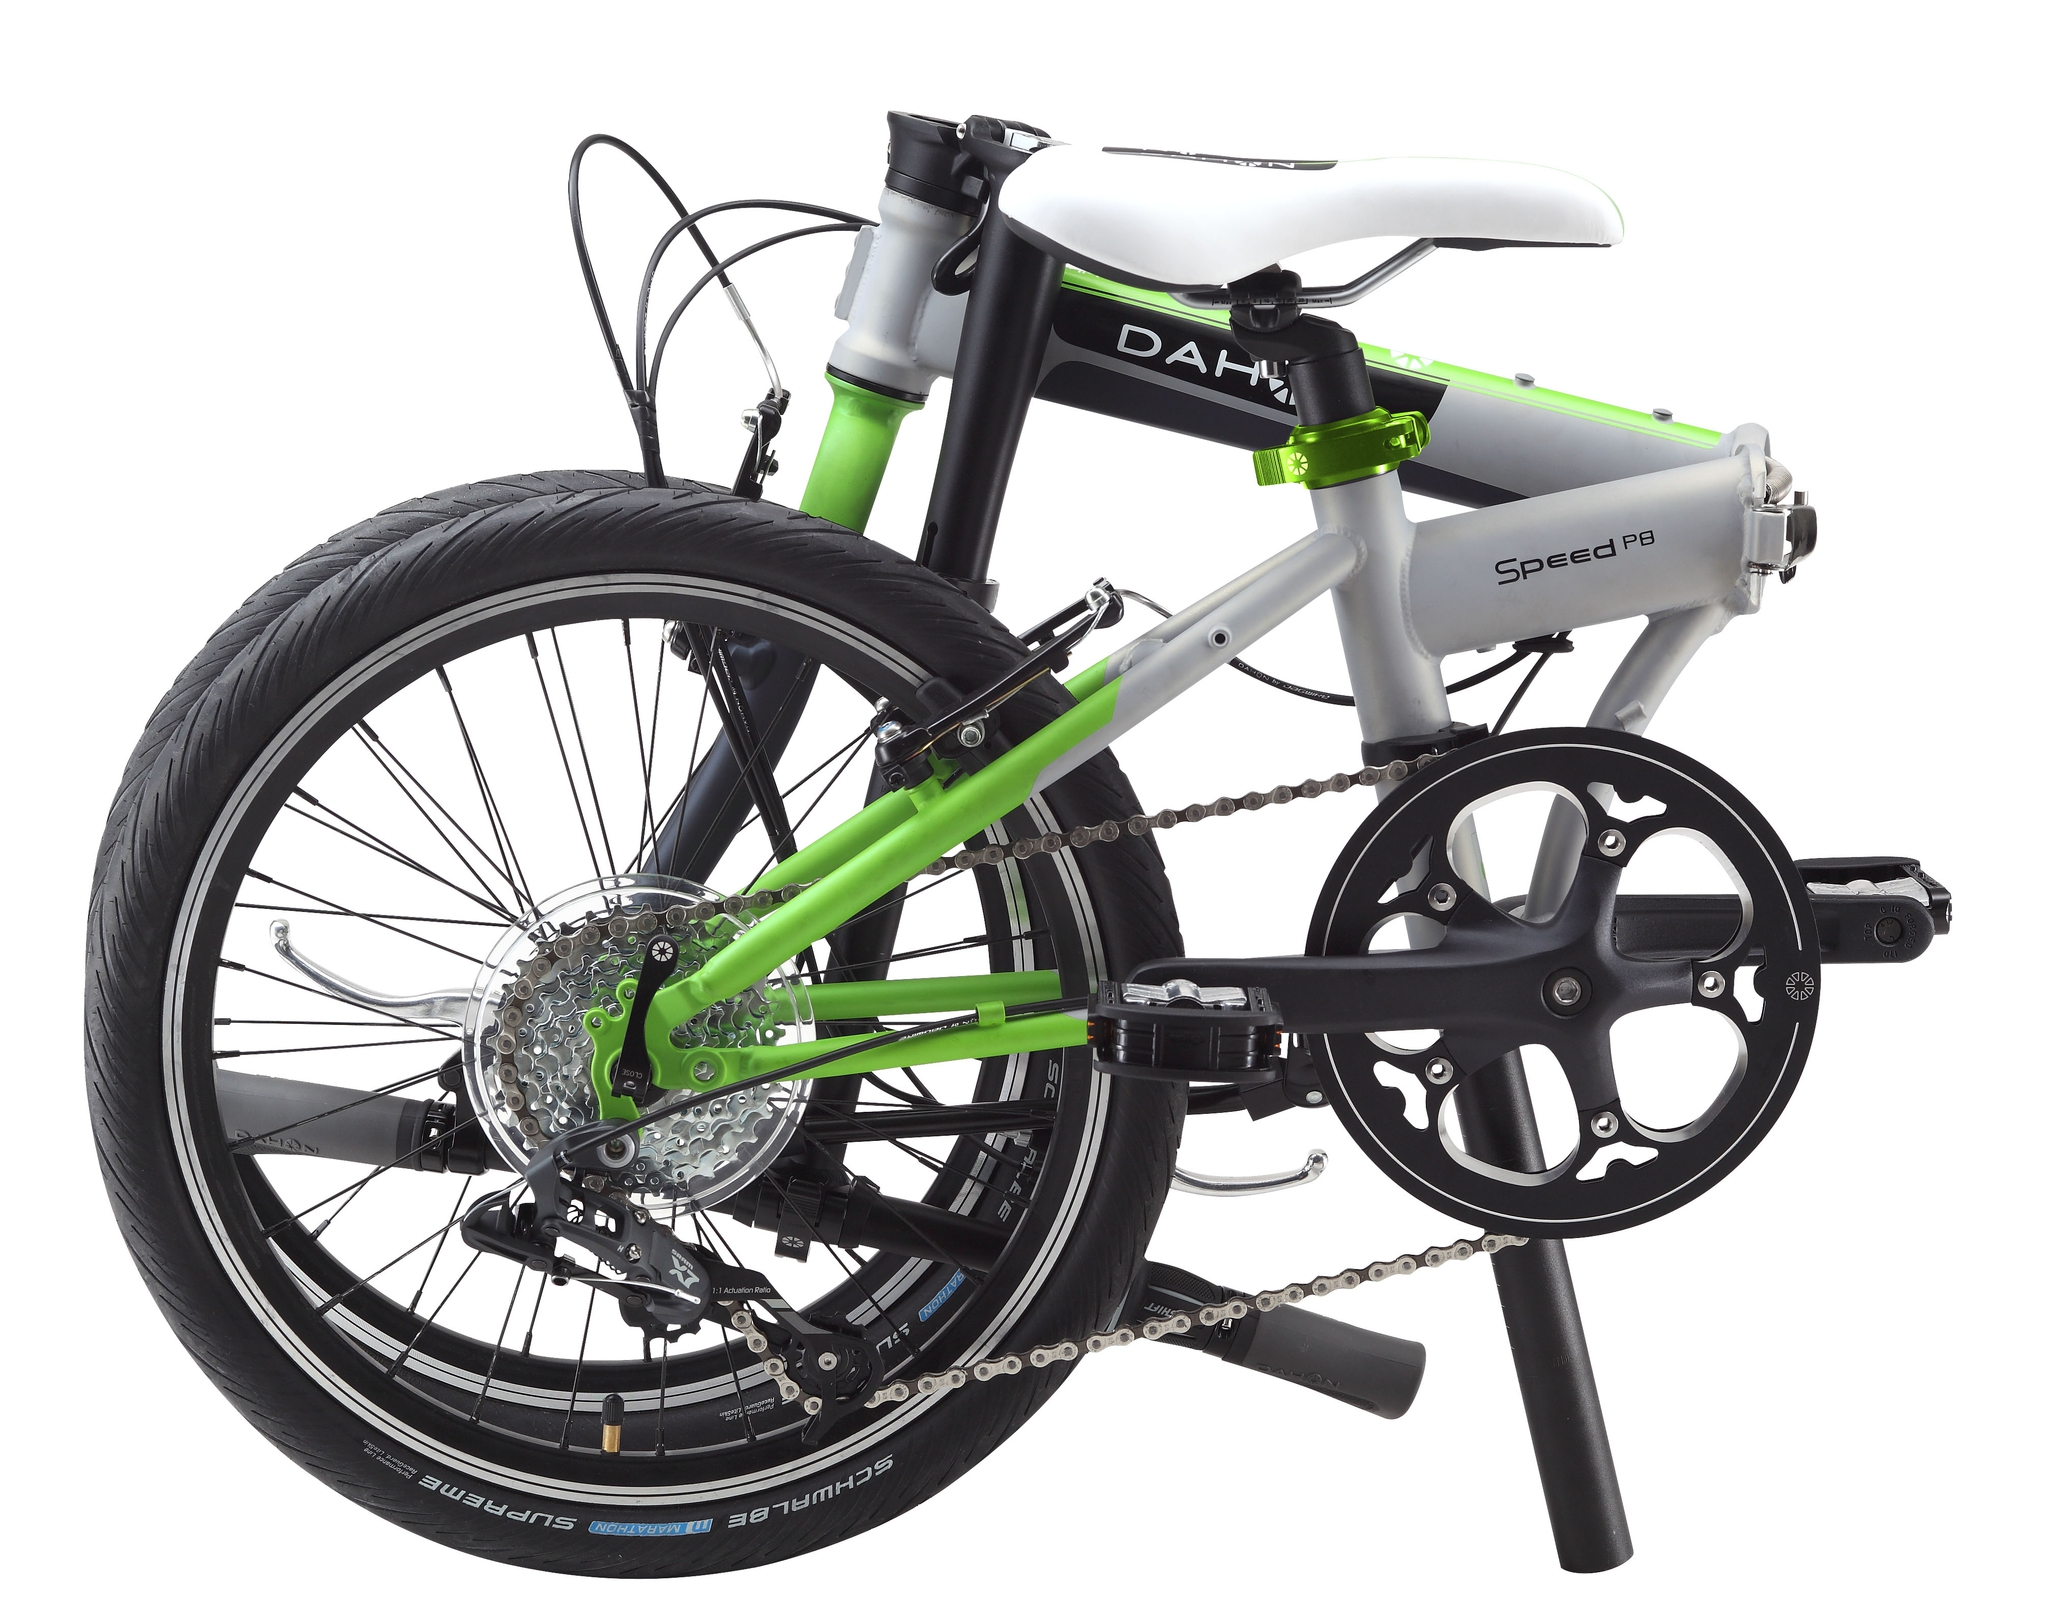 Dahon Speed D8 (2015)